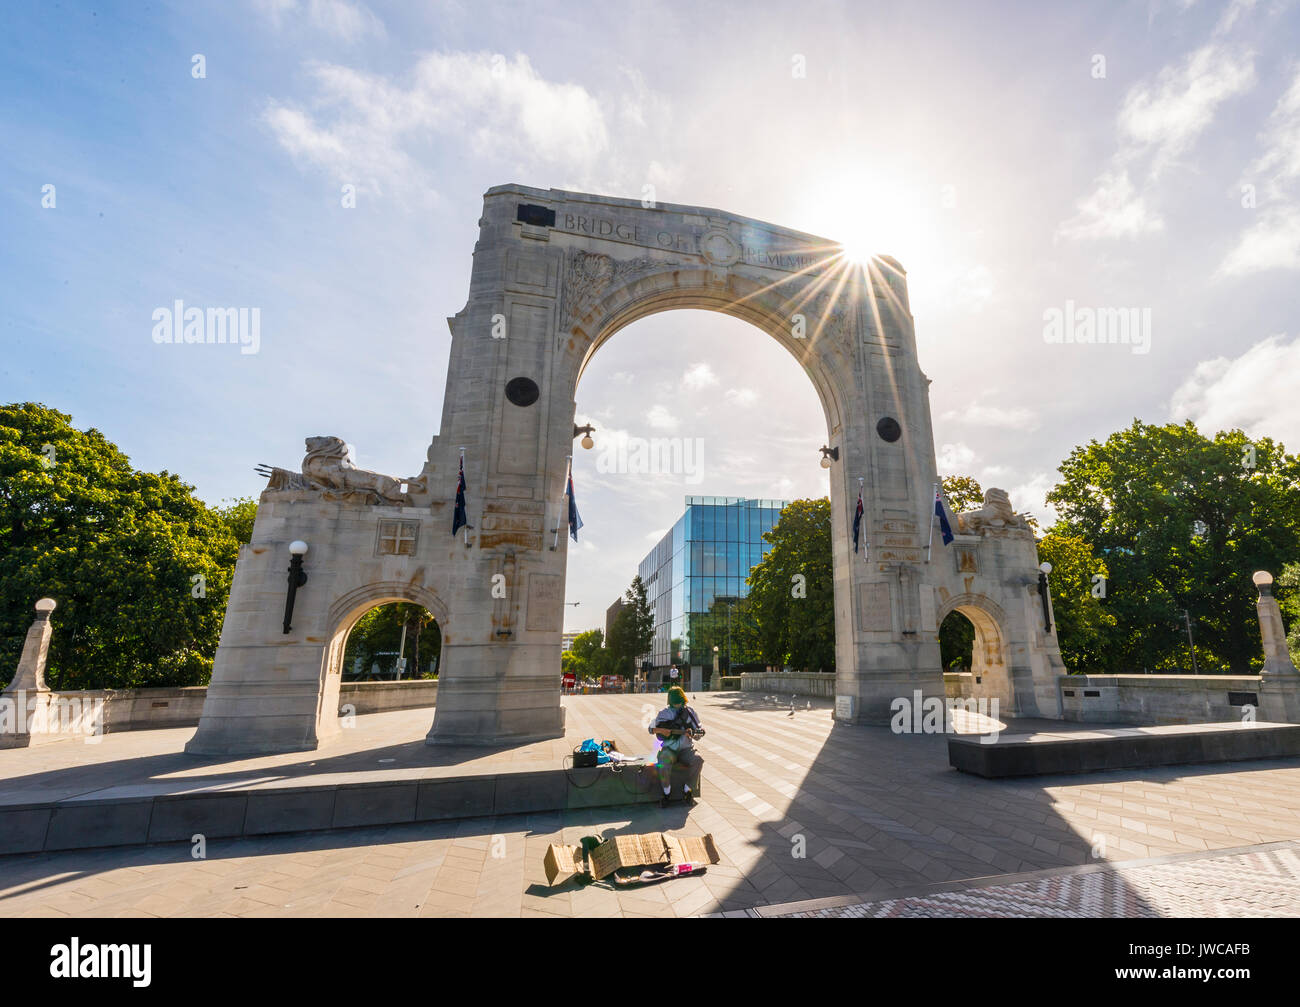 Bridge of Recollection, Bridge of Remembrance, Christchurch, Canterbury, South Island, New Zealand, Oceania - Stock Image